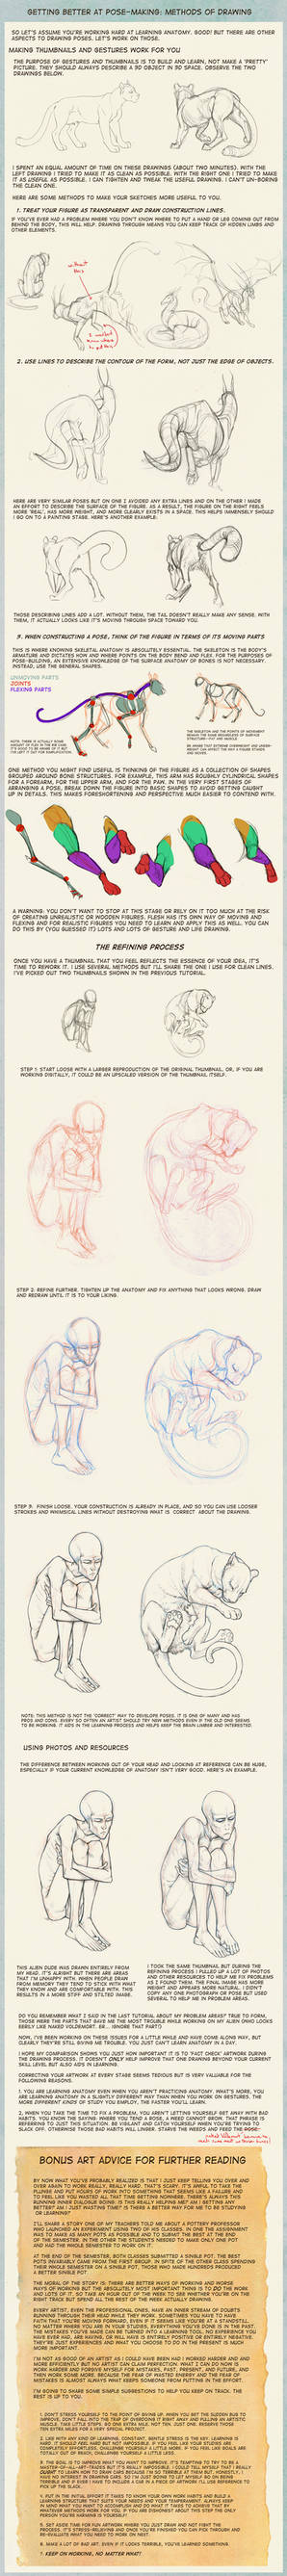 Poses: methods of drawing